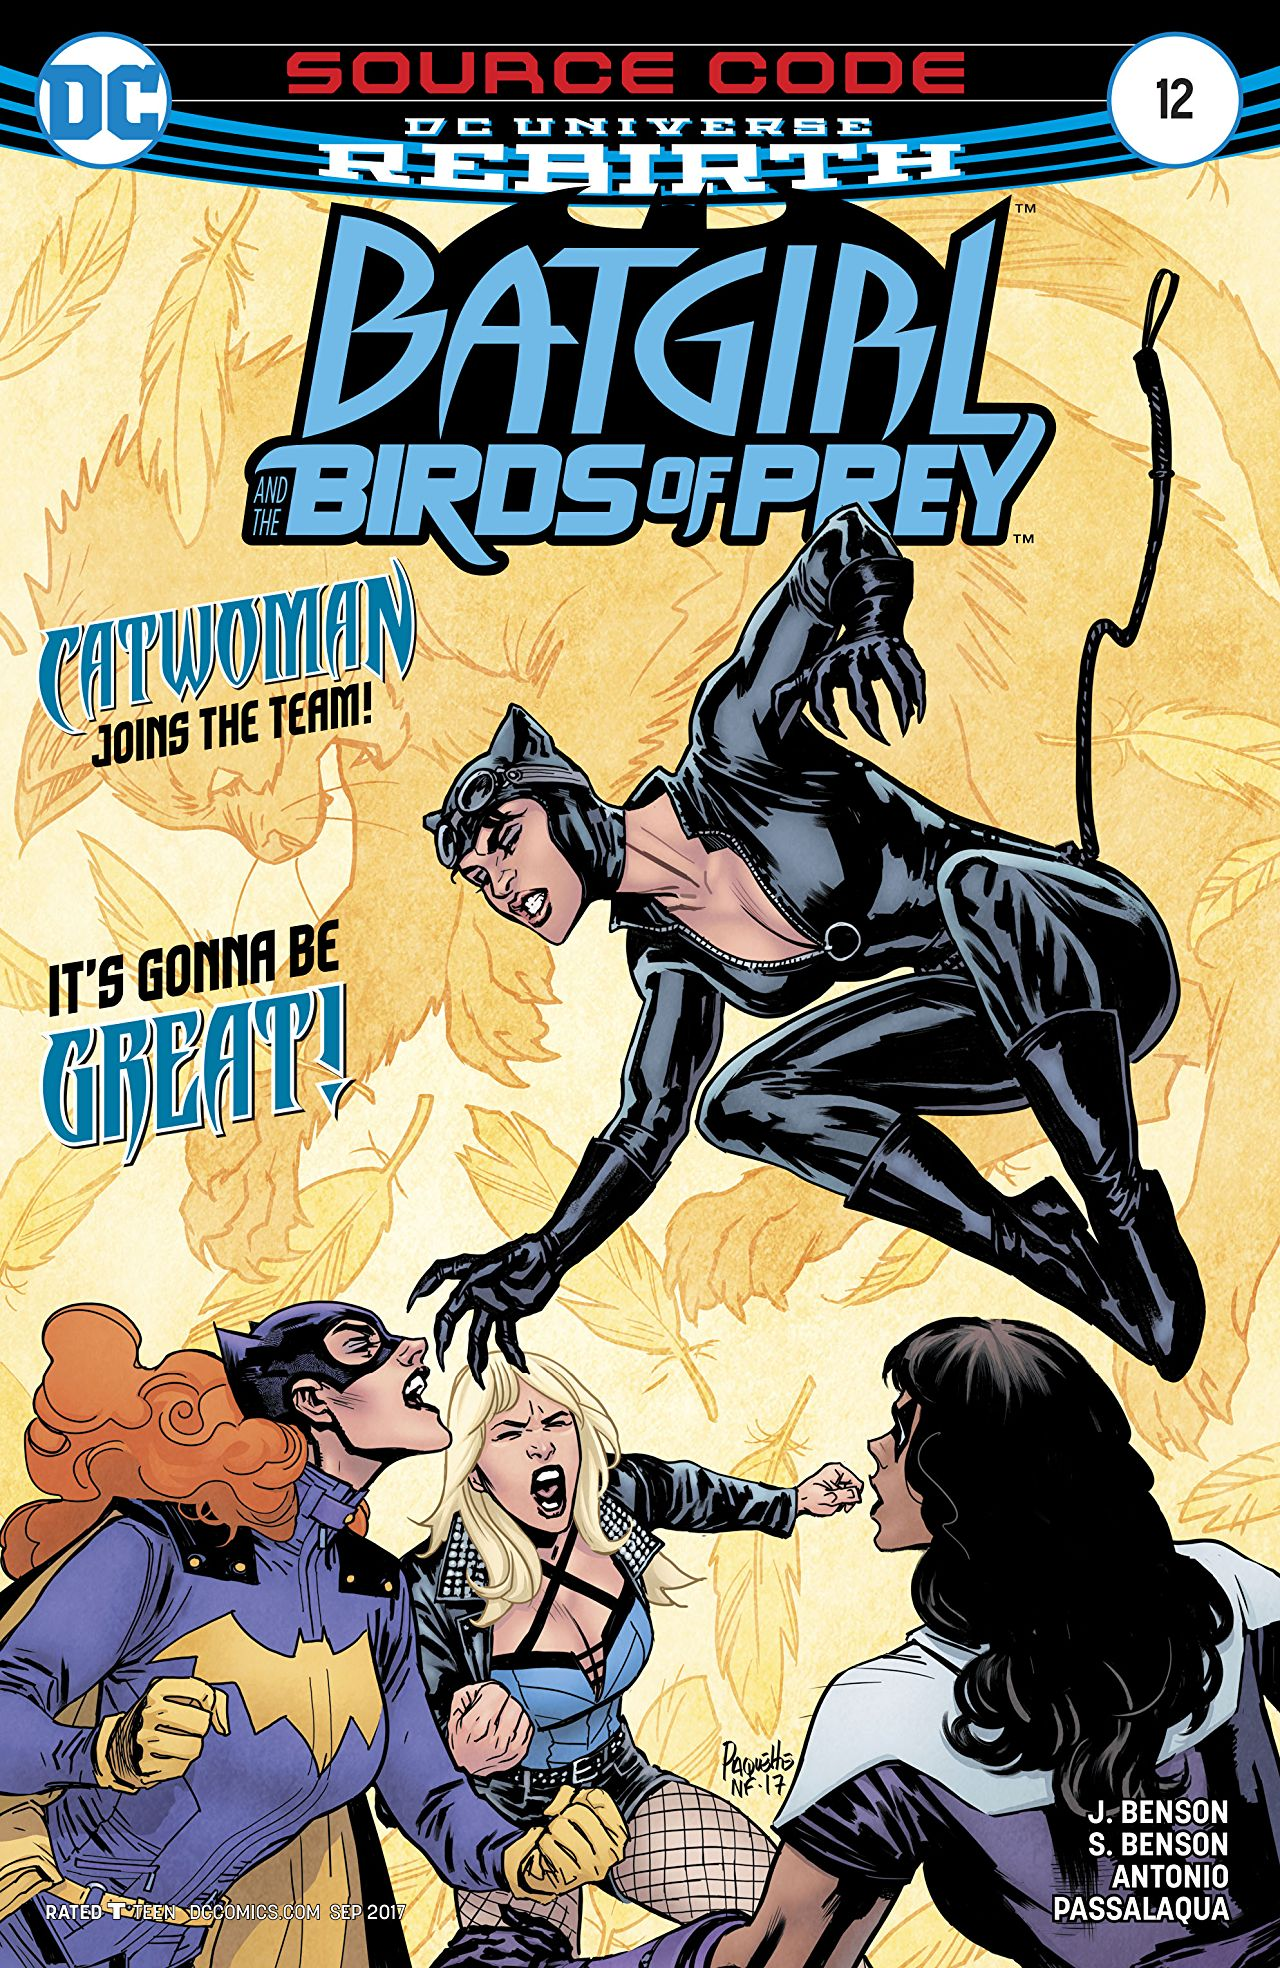 review BATGIRL AND THE BIRDS OF PREY #12